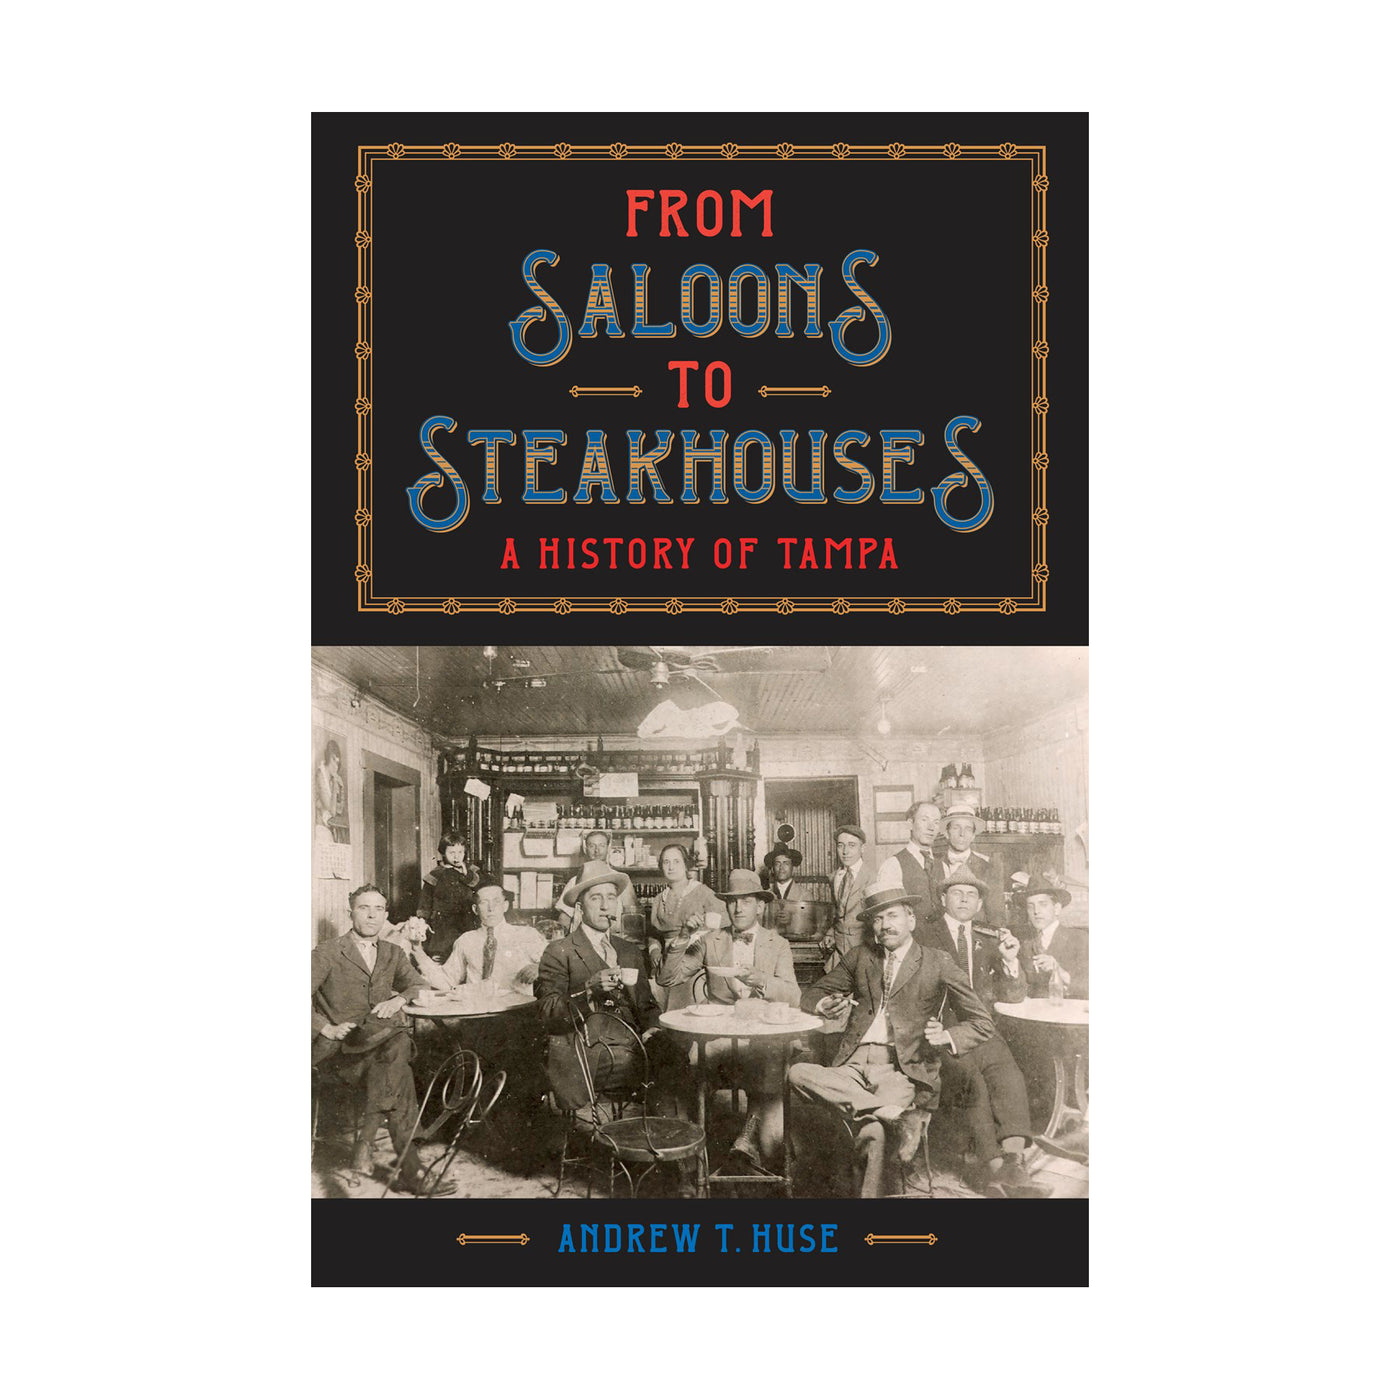 From Saloons to Steakhouses: A History of Tampa